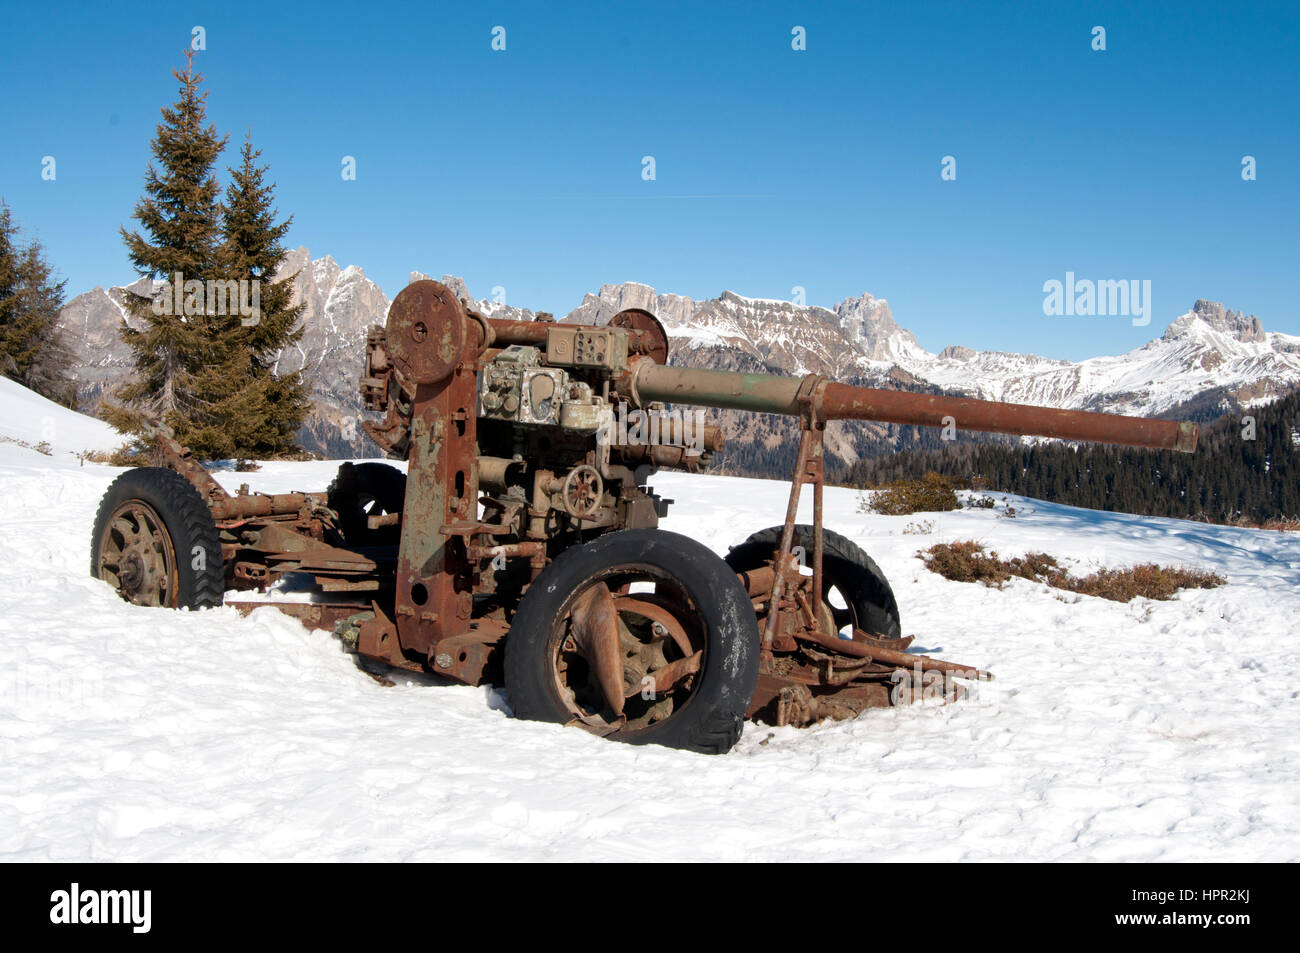 Cannon of the First World War abandoned on the war zone over the Dolomites, near Alleghe (Italy) - Stock Image